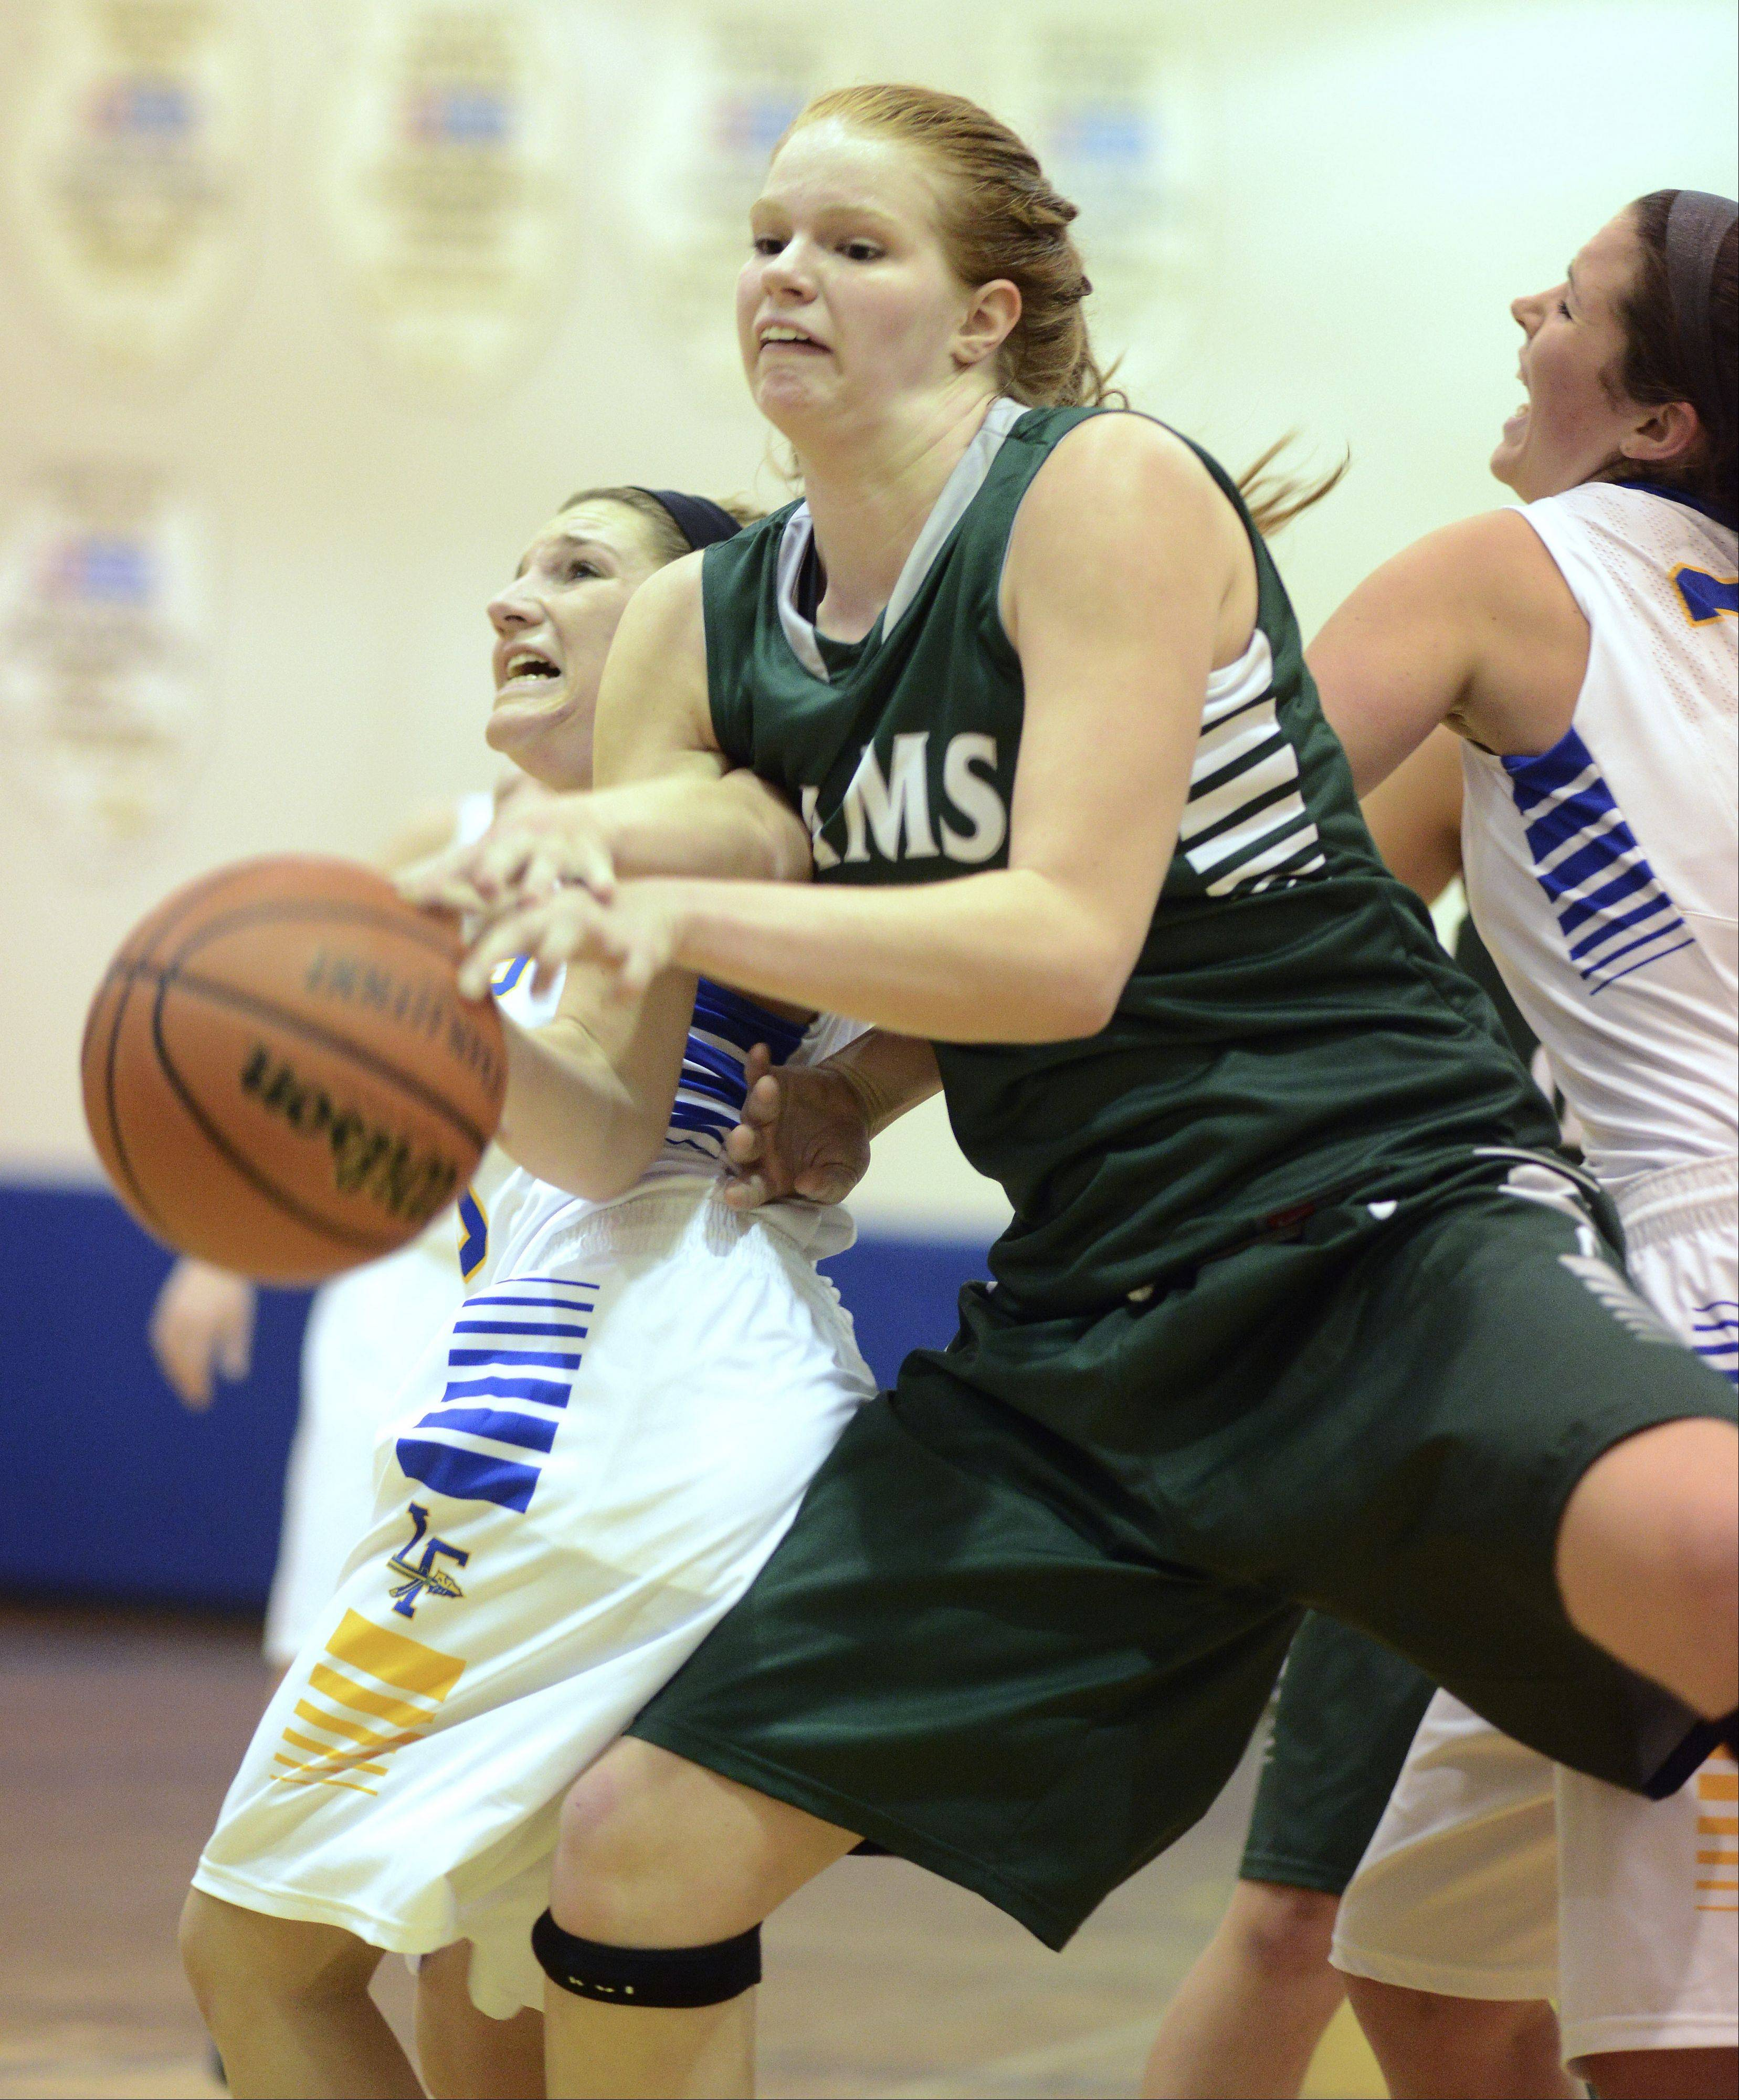 Grayslake Central's Morgan Dahlstrom, middle, draws contact while trying to drive in between Lake Forest's Gabby Perino, left, and Annie Keller during Saturday's game at Warren.